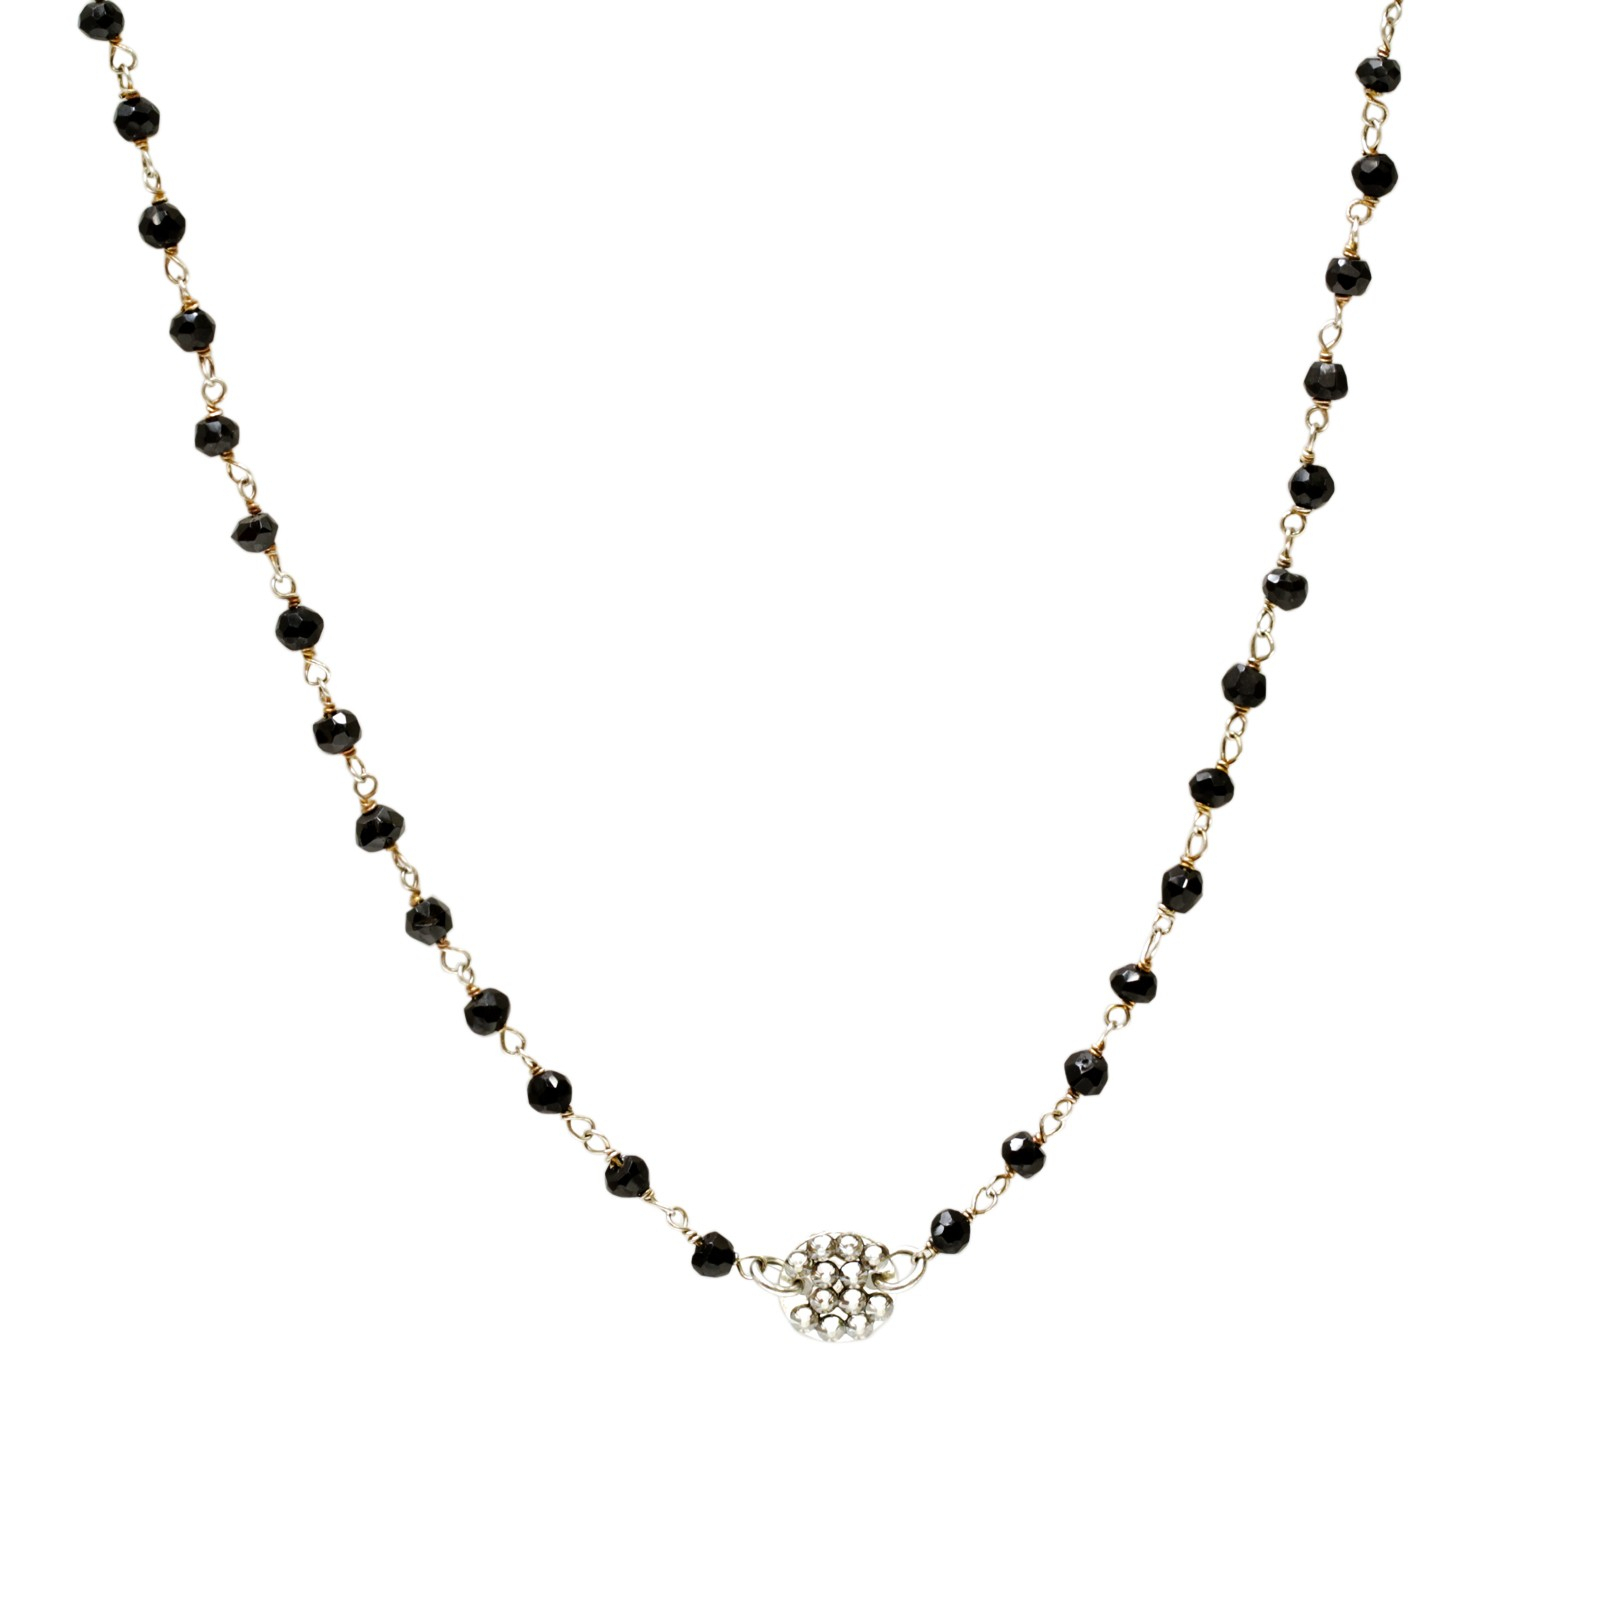 Roni Blanshay Iolite Beaded With Pave Crystal Disc Necklace With Regard To Most Recent Beads & Pavé Necklaces (Gallery 7 of 25)